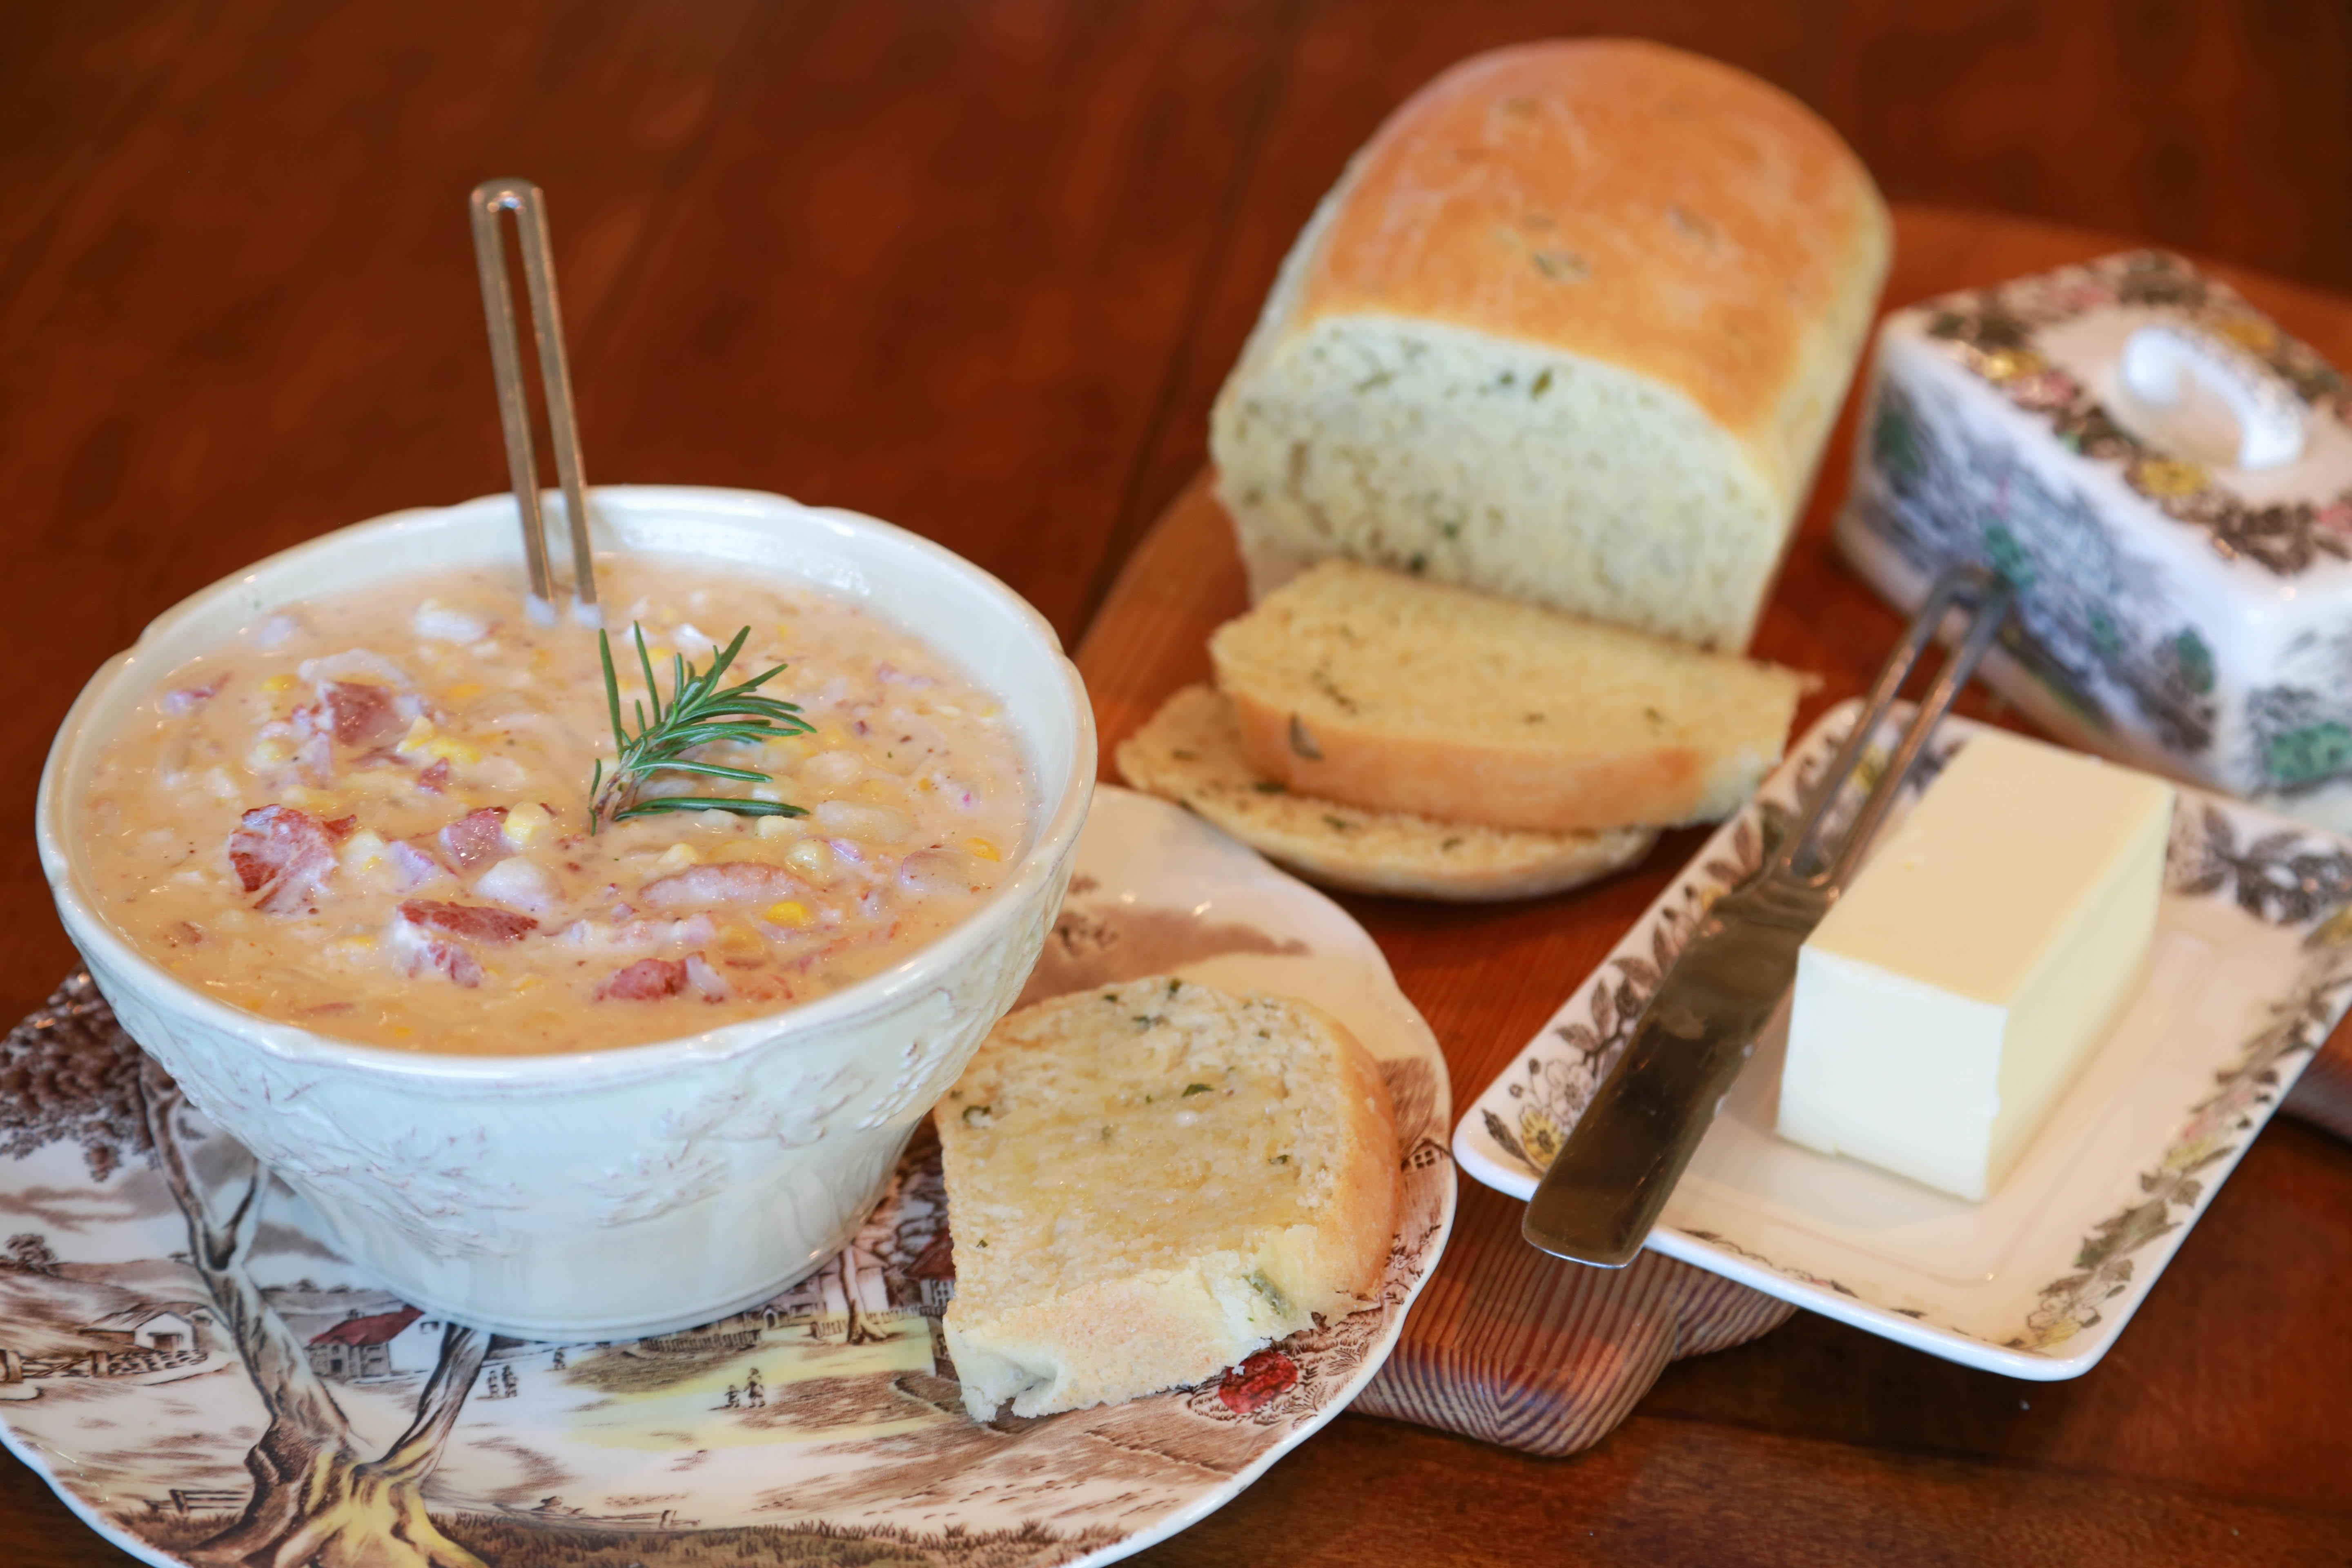 Sherelle's Corn Chowder and Parmesan, Basil and Rosemary Bread